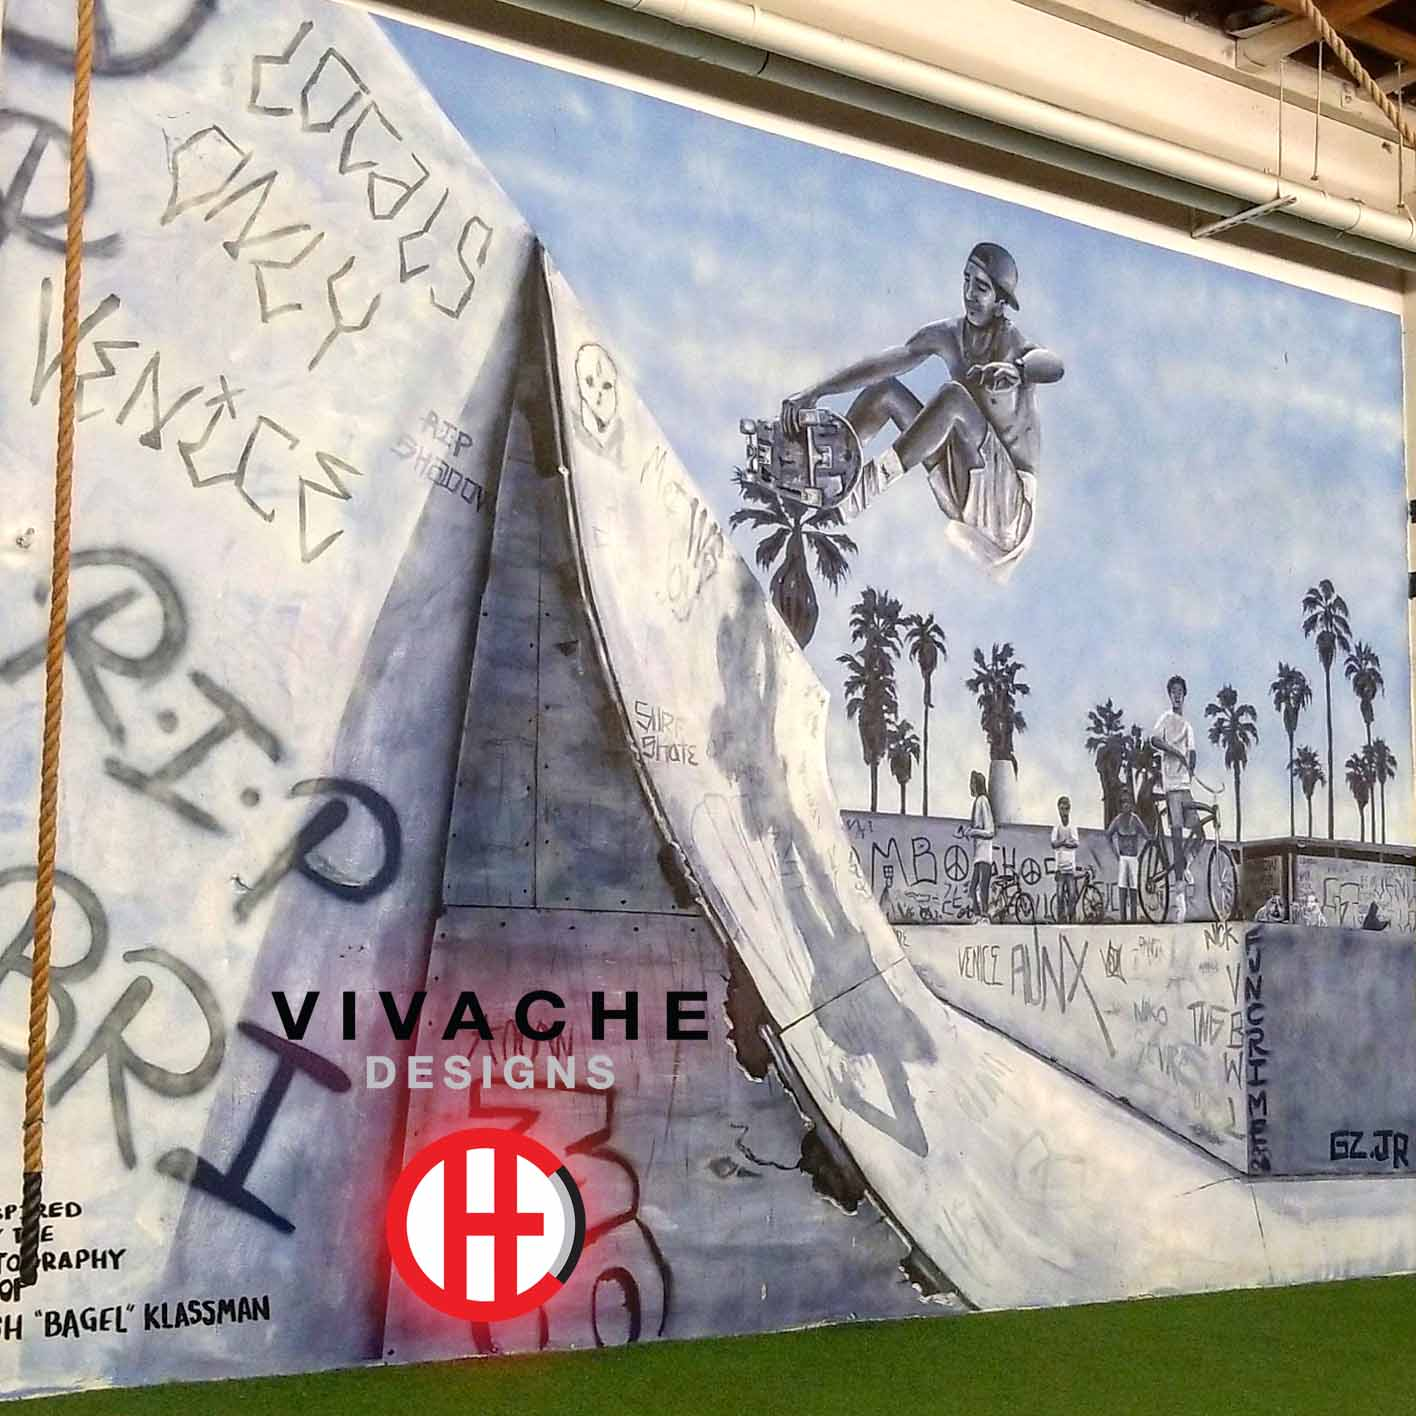 Mural Painter Vivache Designs Wall Mural Art Gallery LA Art District Mural Painters.jpg